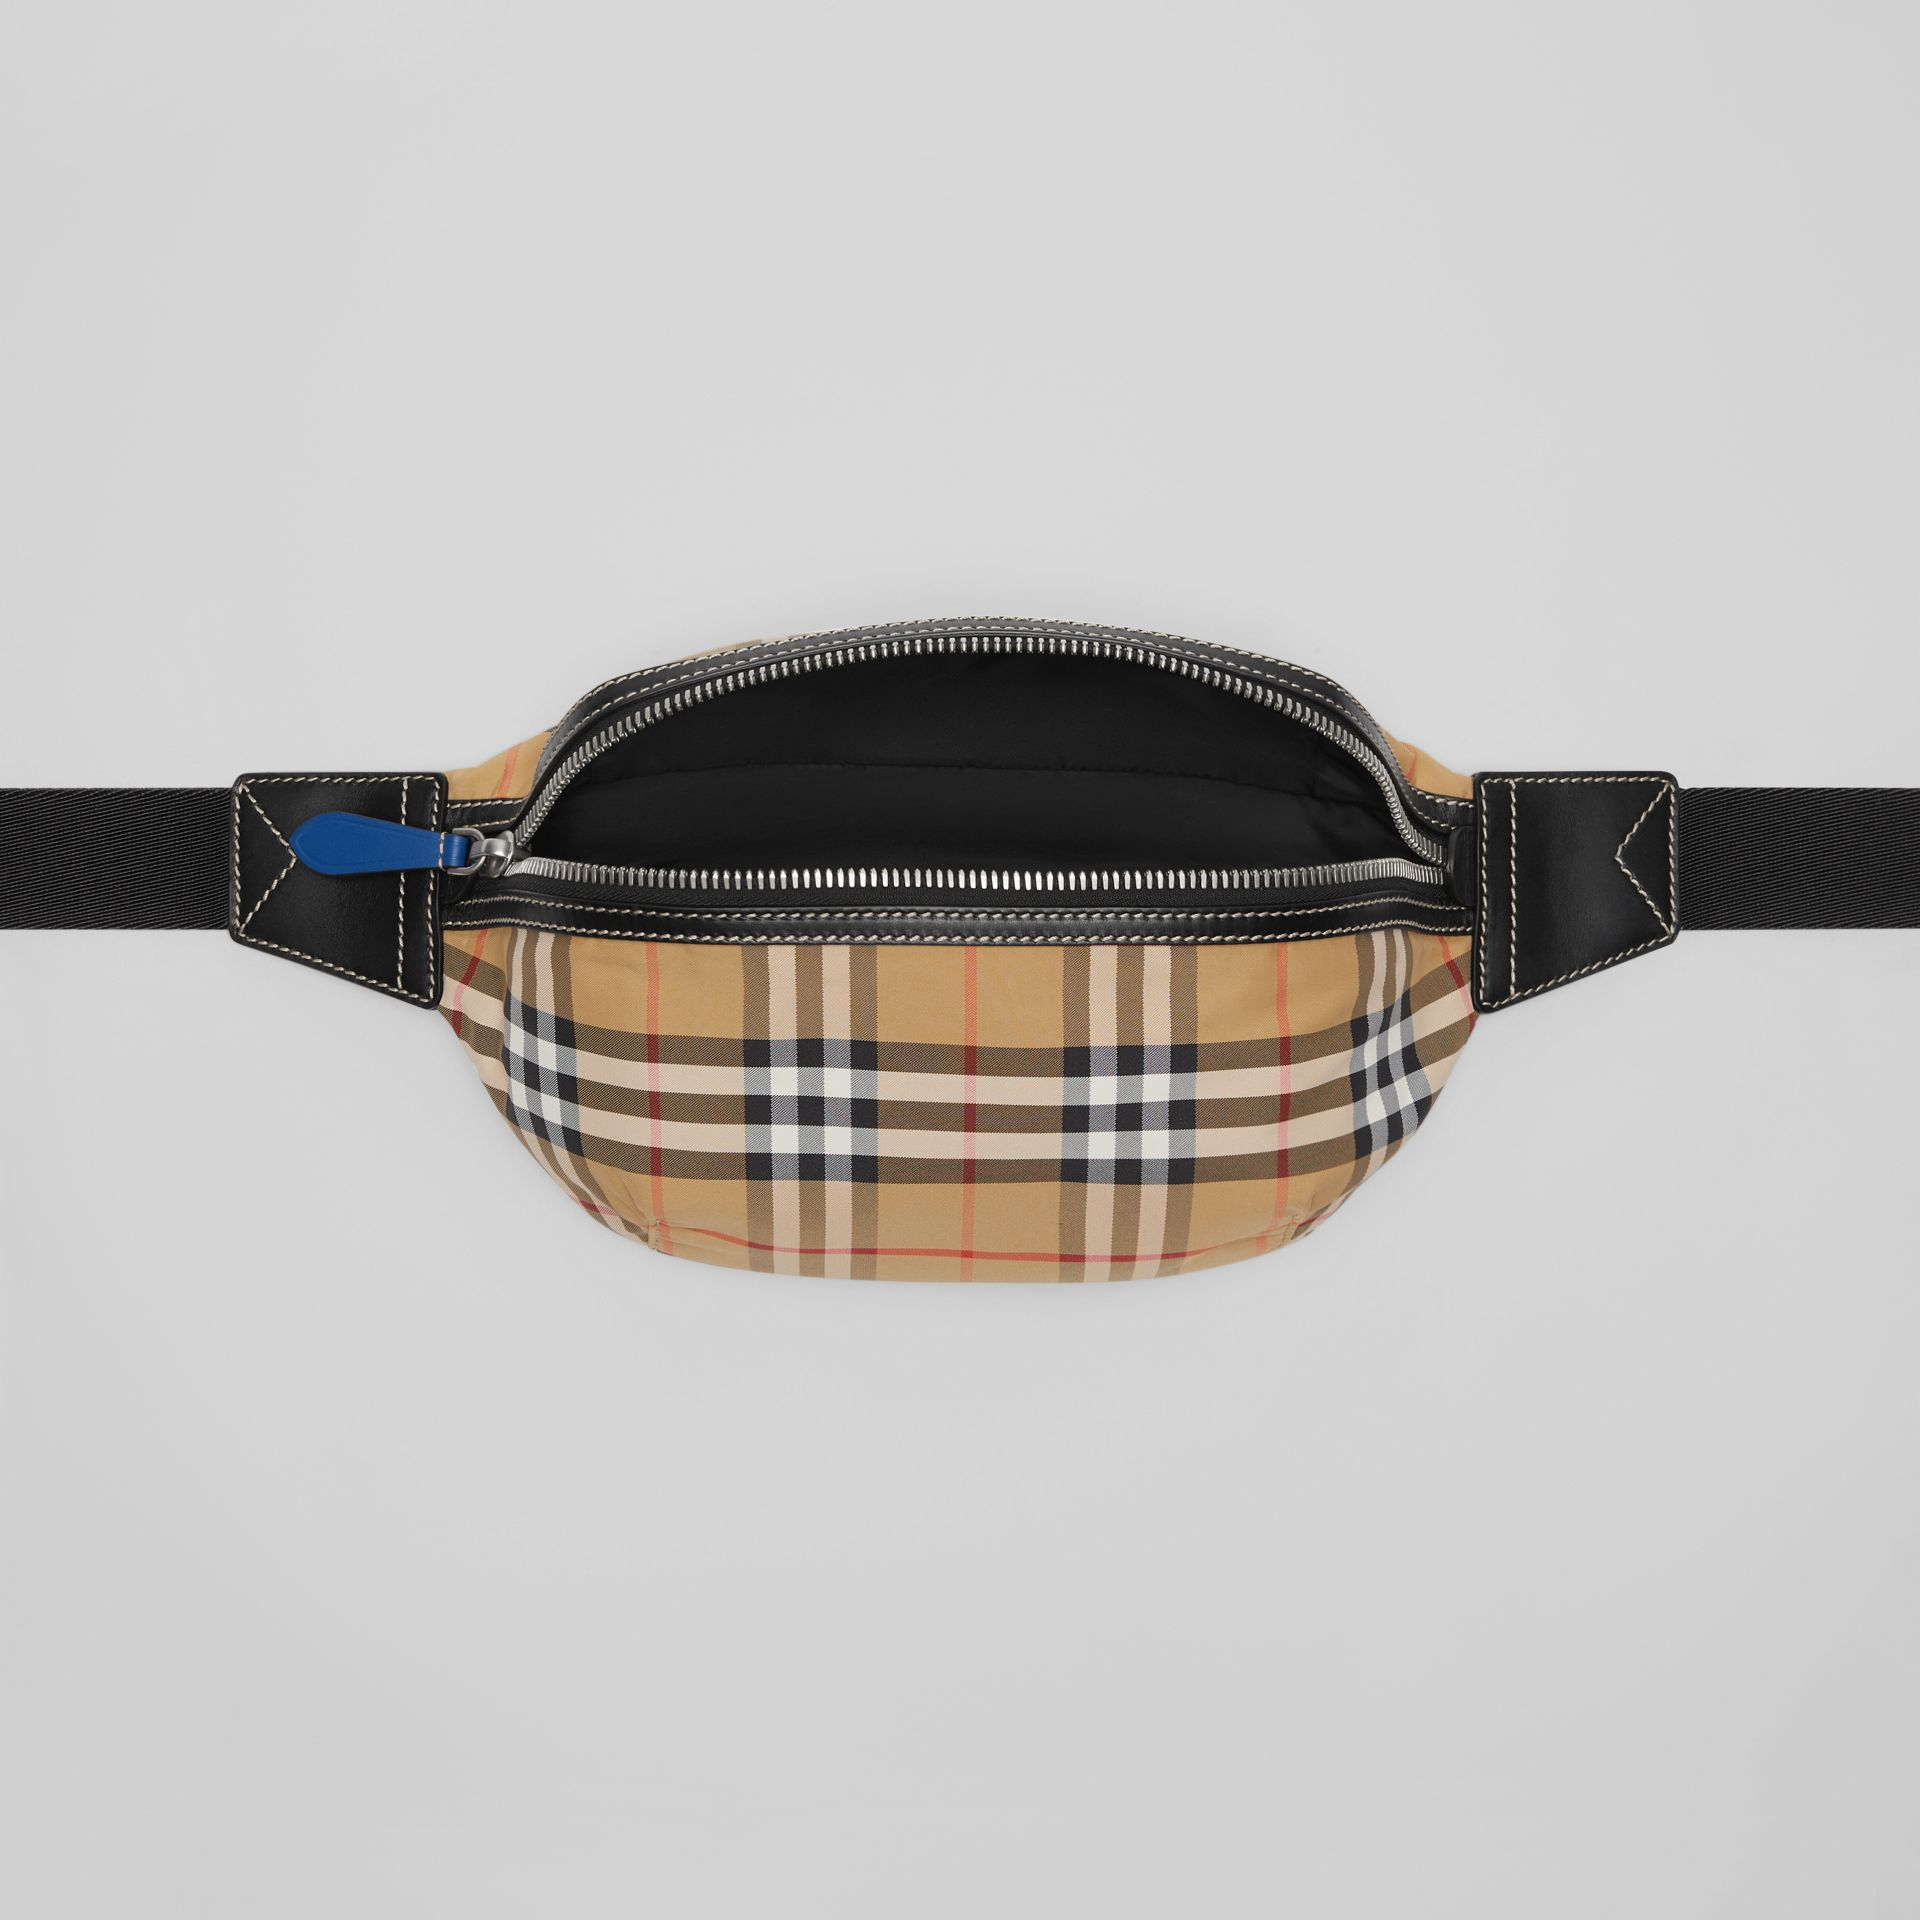 Medium Vintage Check Bum Bag in Antique Yellow | Burberry - gallery image 3